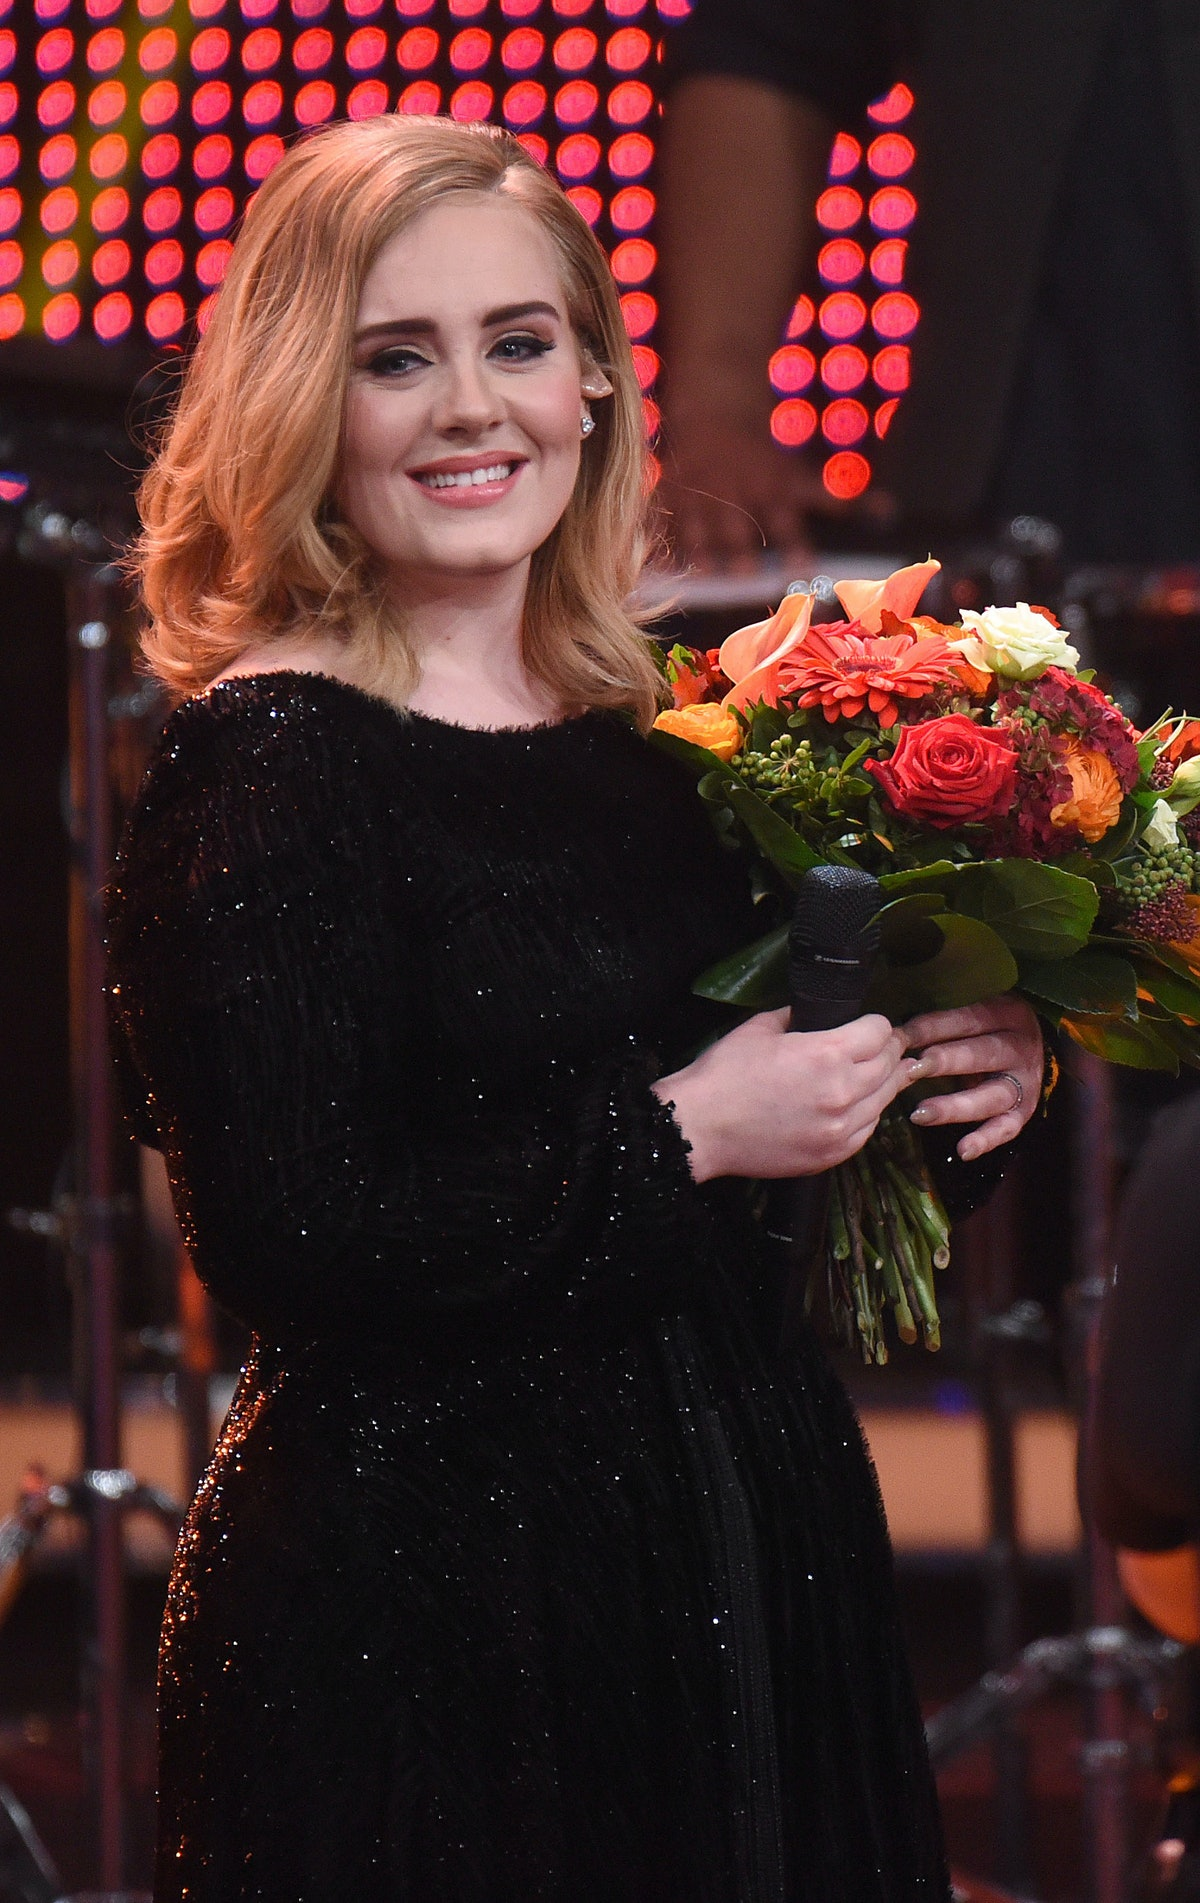 The singer Adele performs on stage during RTL's end-of-year review '2015! Menschen, Bilder, Emotione...